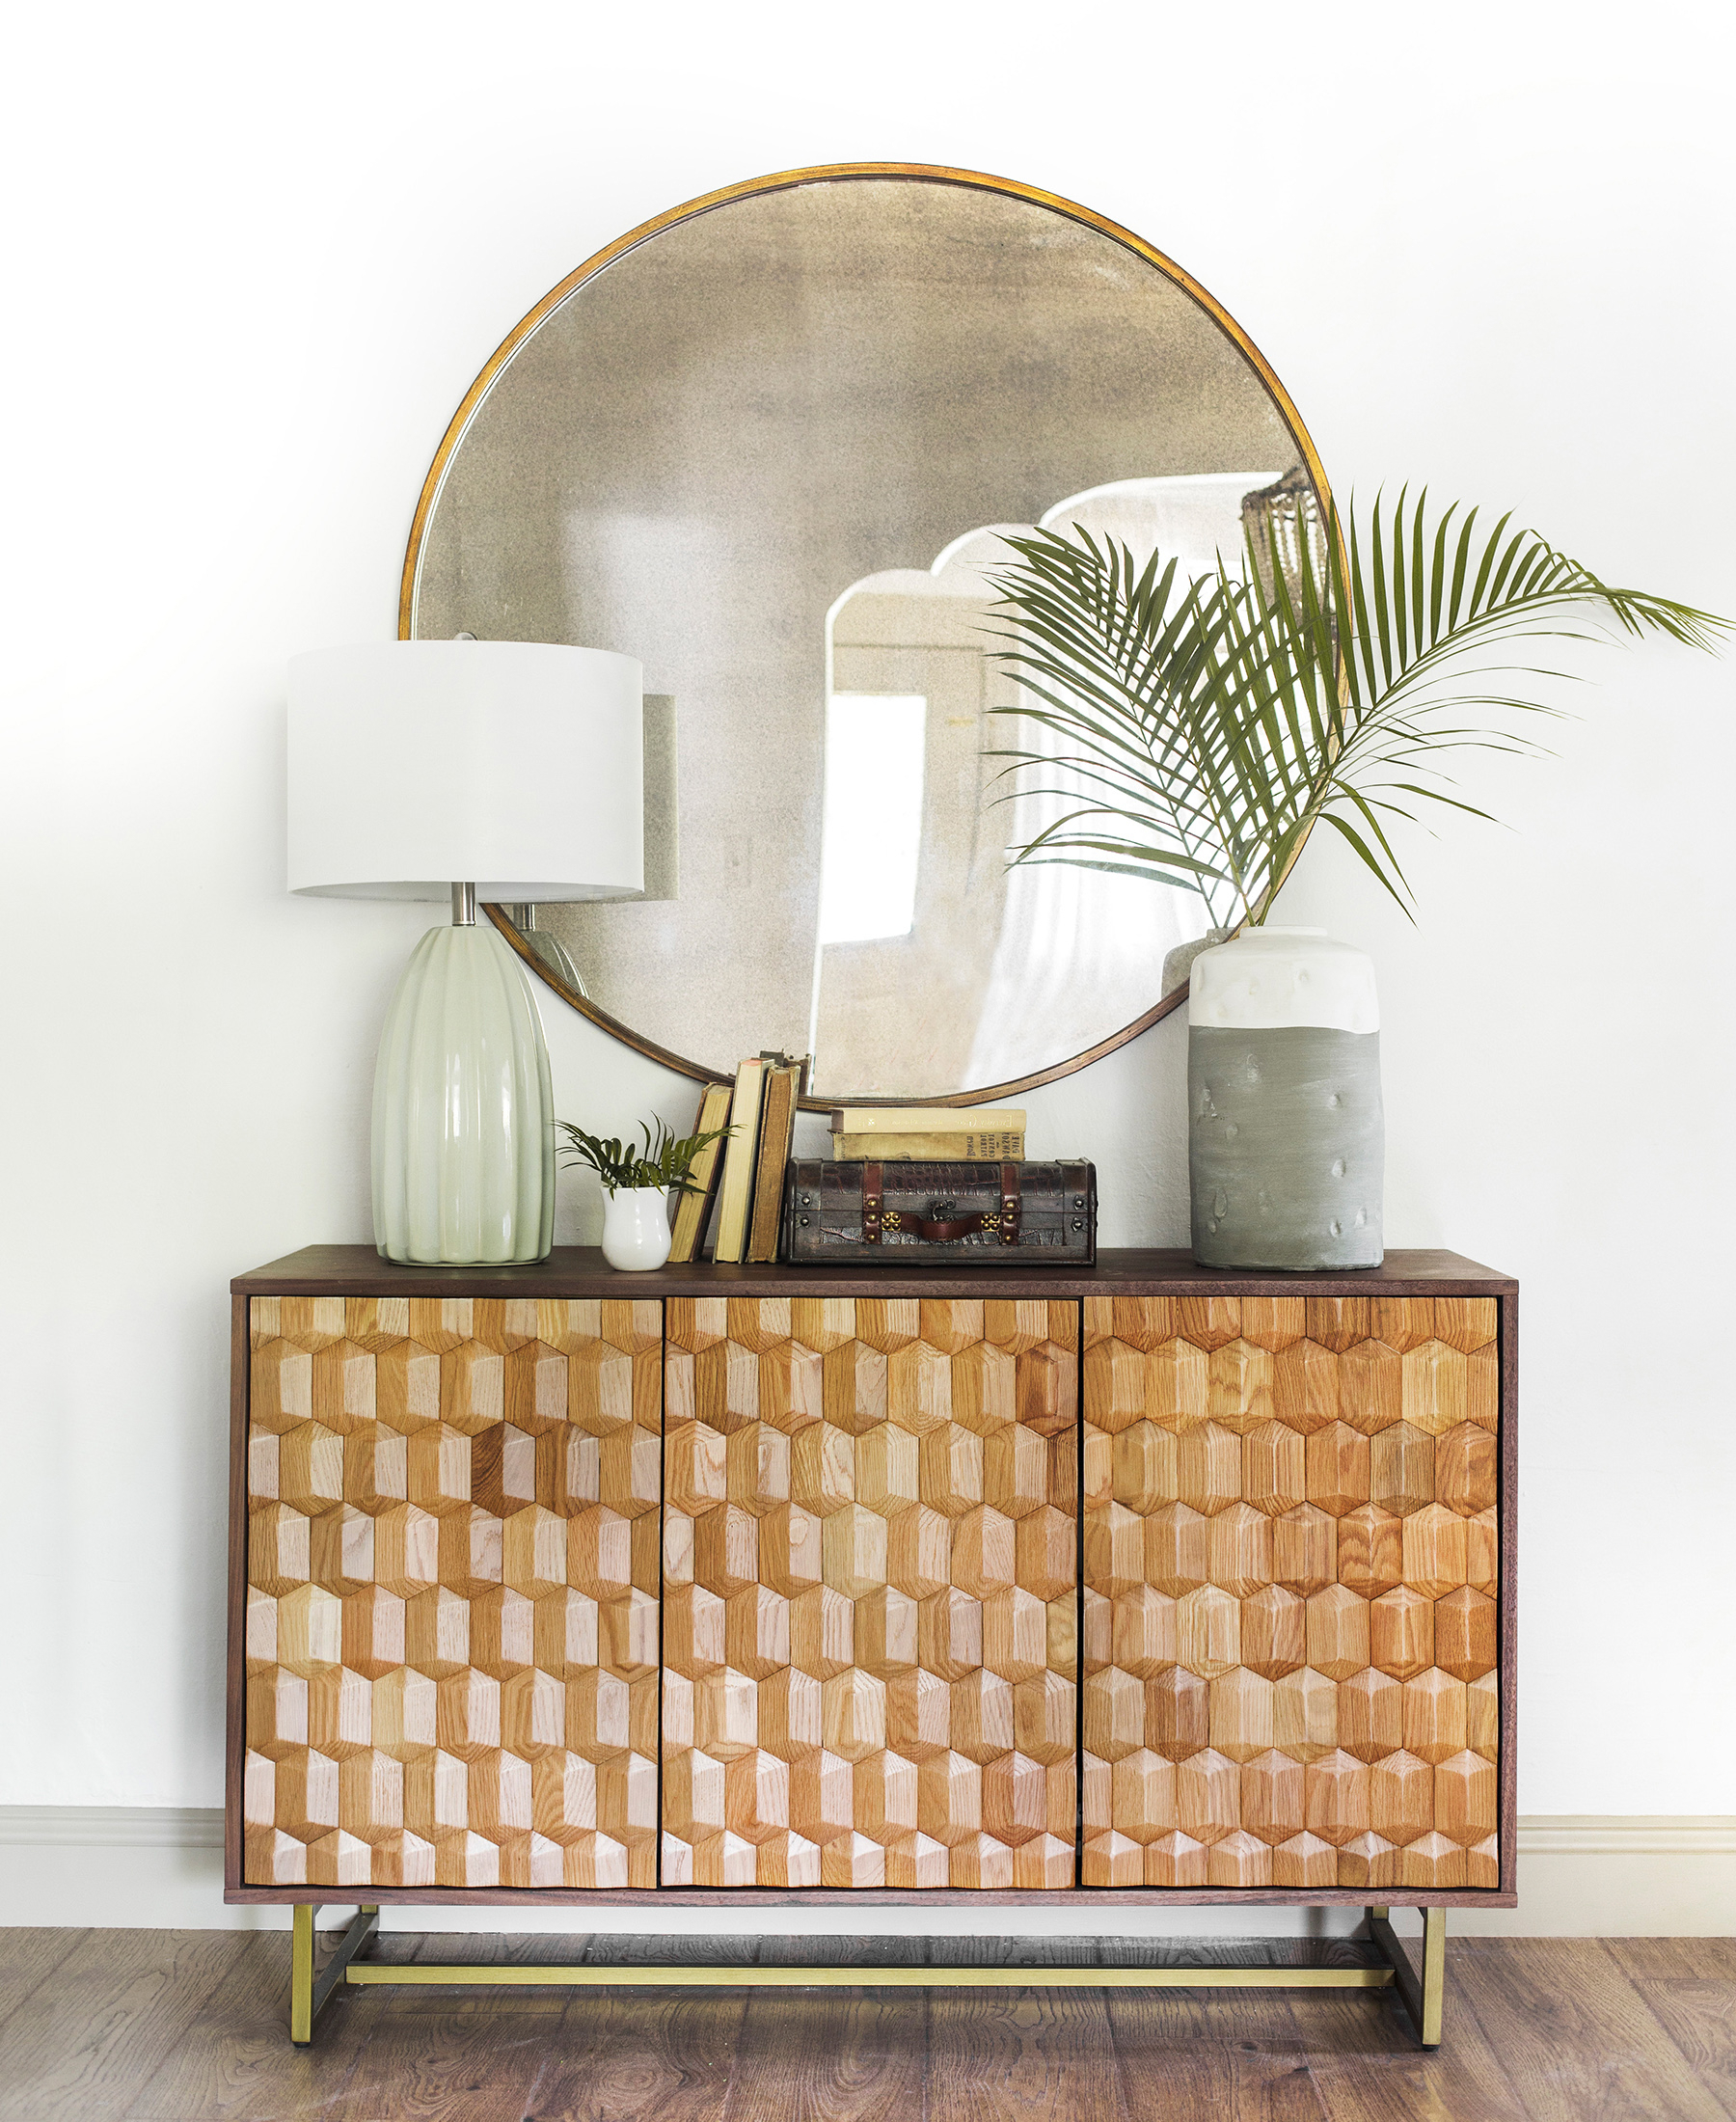 Living Room Storage Ideas: The Sideboard – Articulate Throughout Mid Century Modern Glossy White Buffets (View 10 of 20)